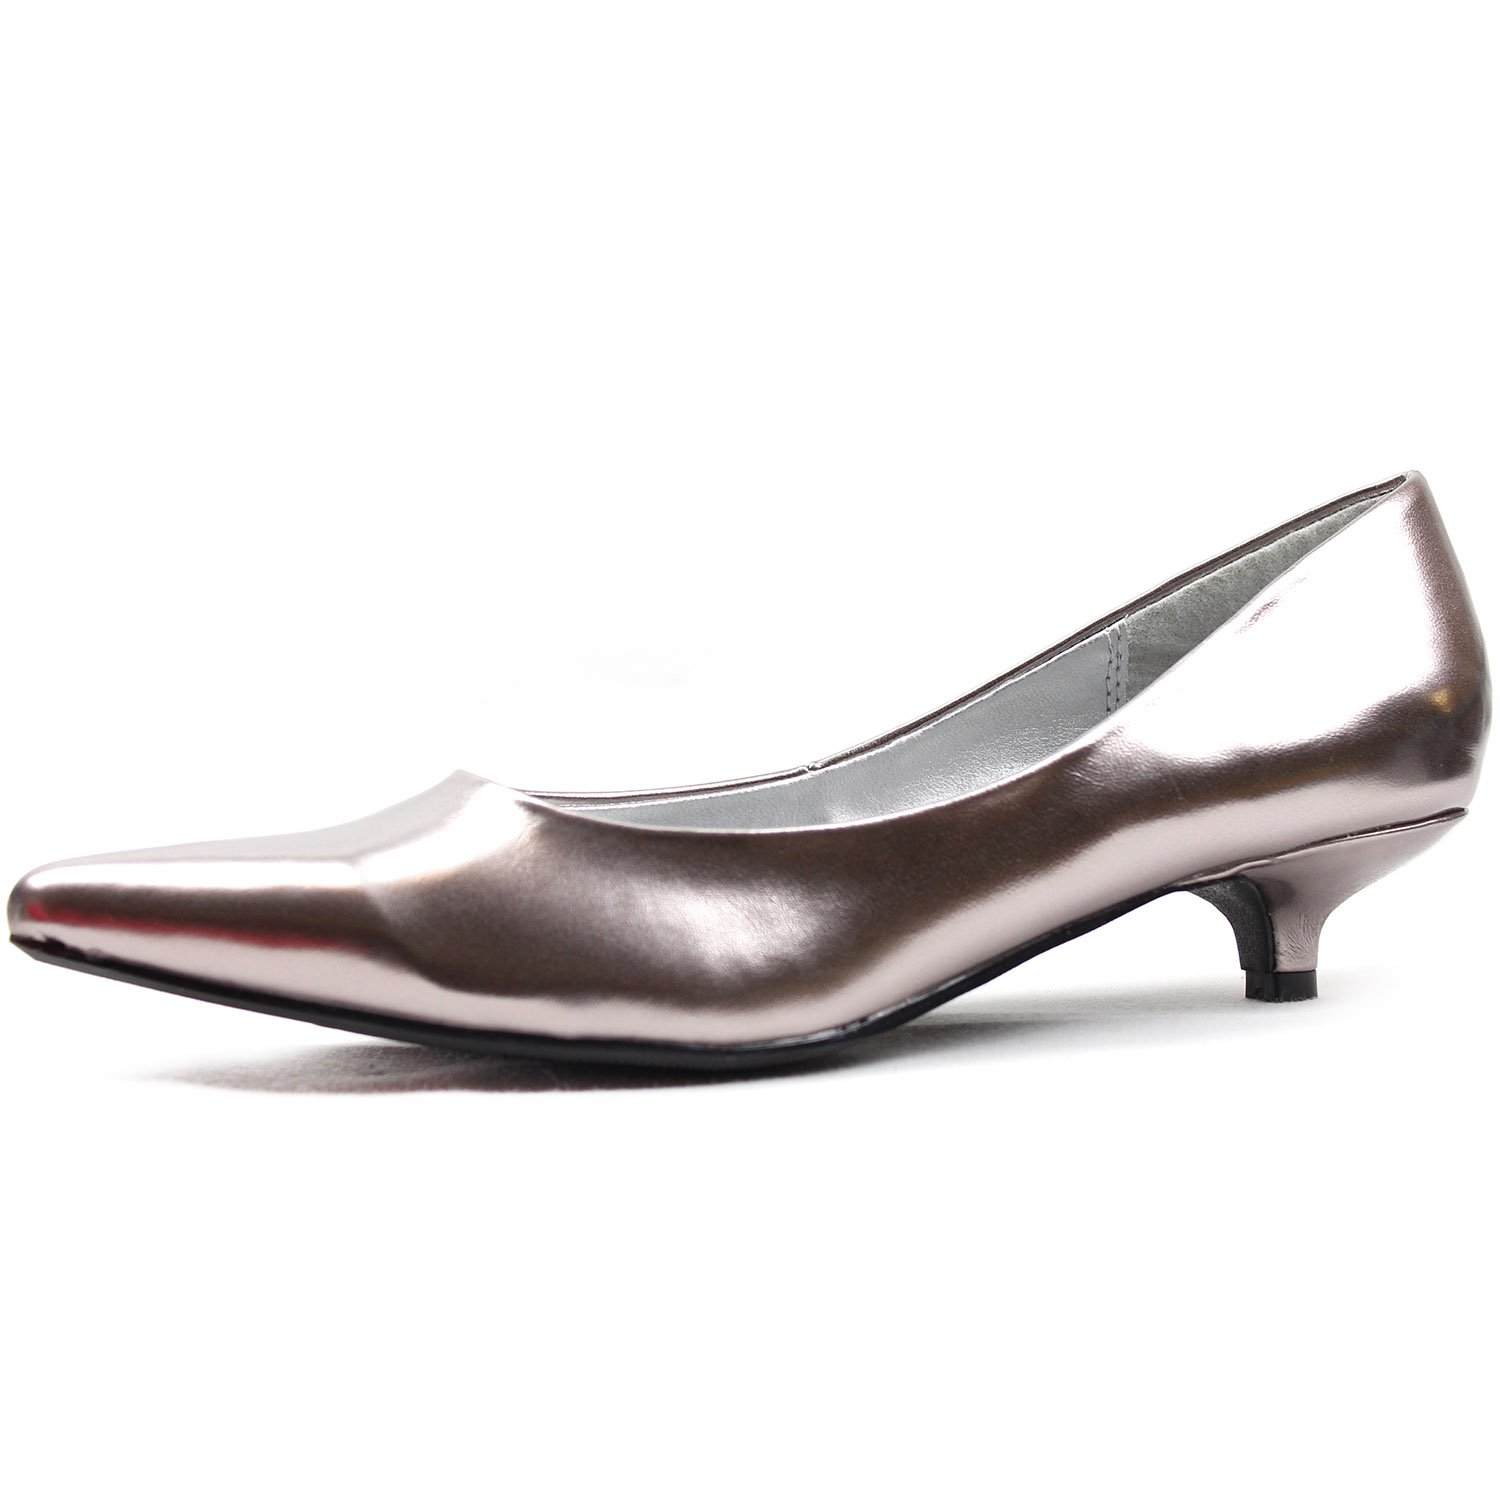 Women's Qupid High Heel Patent Leather Kitten Pointy Toe Comfortable Pumps Fashion Shoes